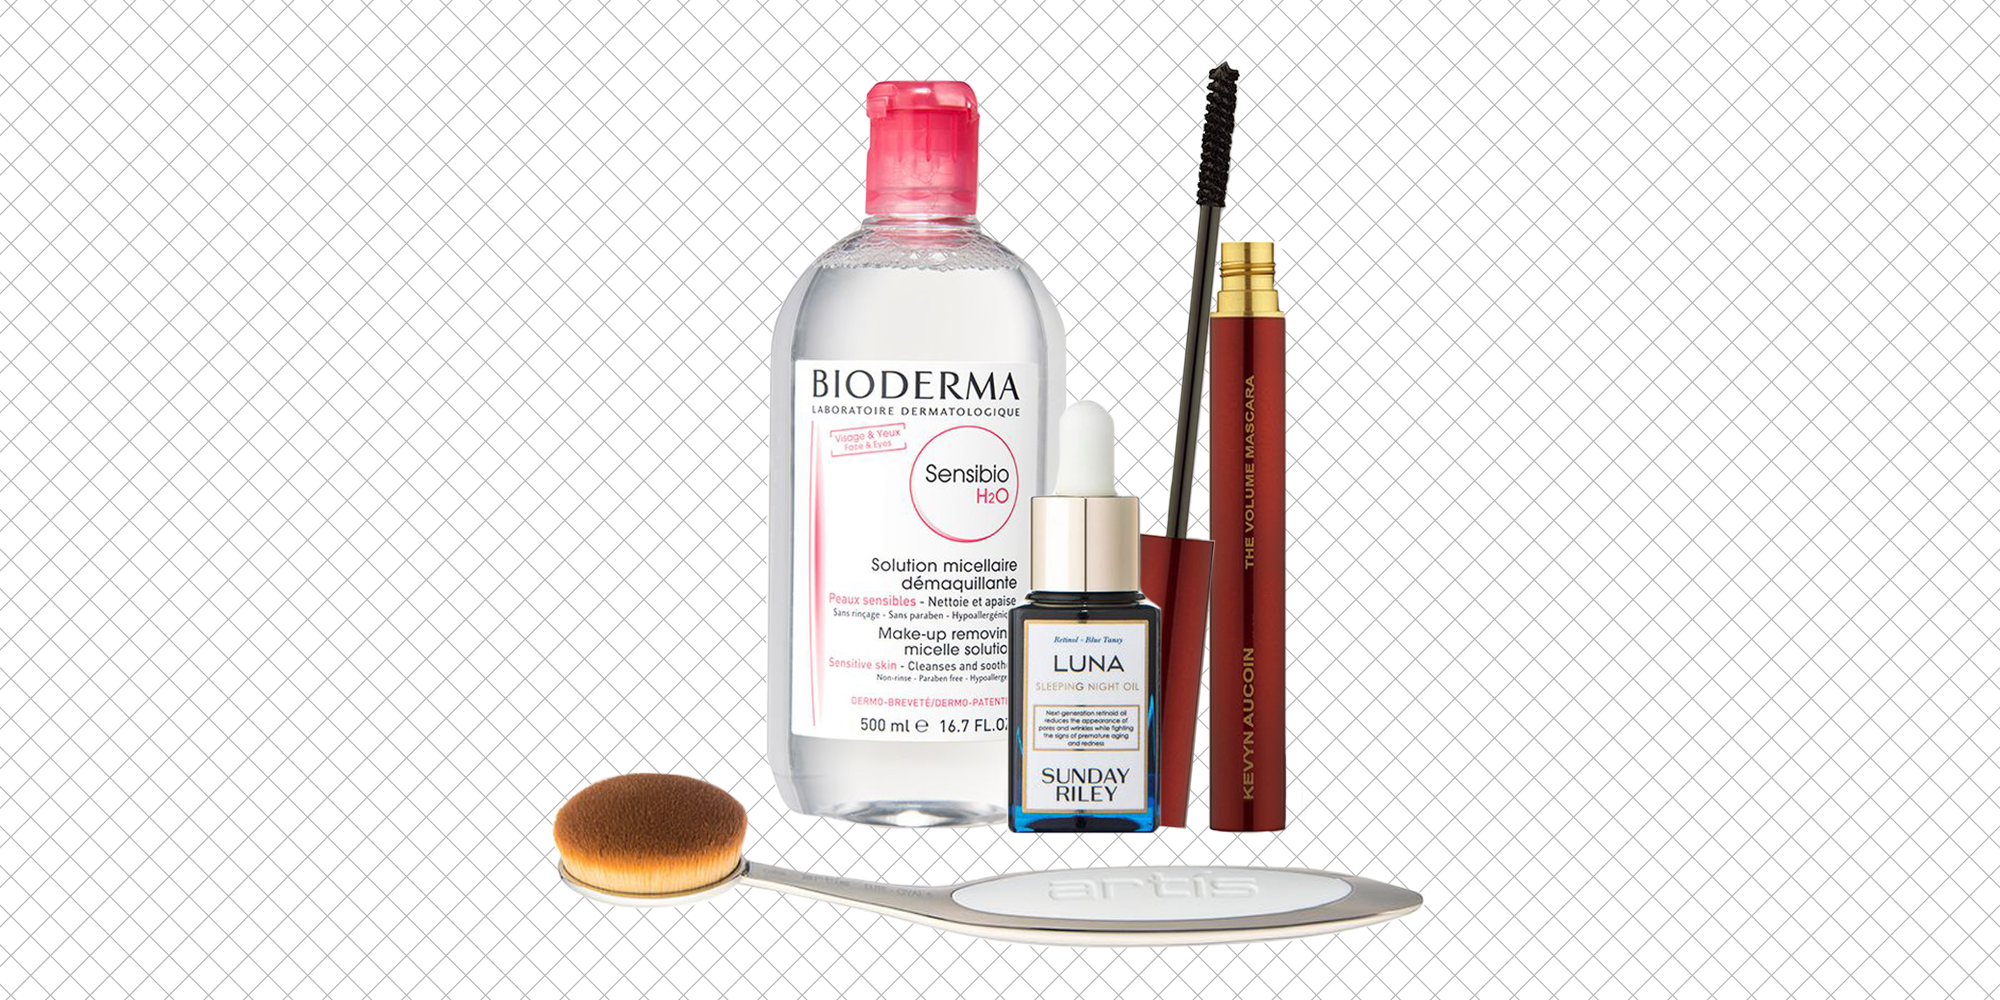 Stock Up on These Summer Beauty Essentials From Dermstore for Memorial Day Weekend